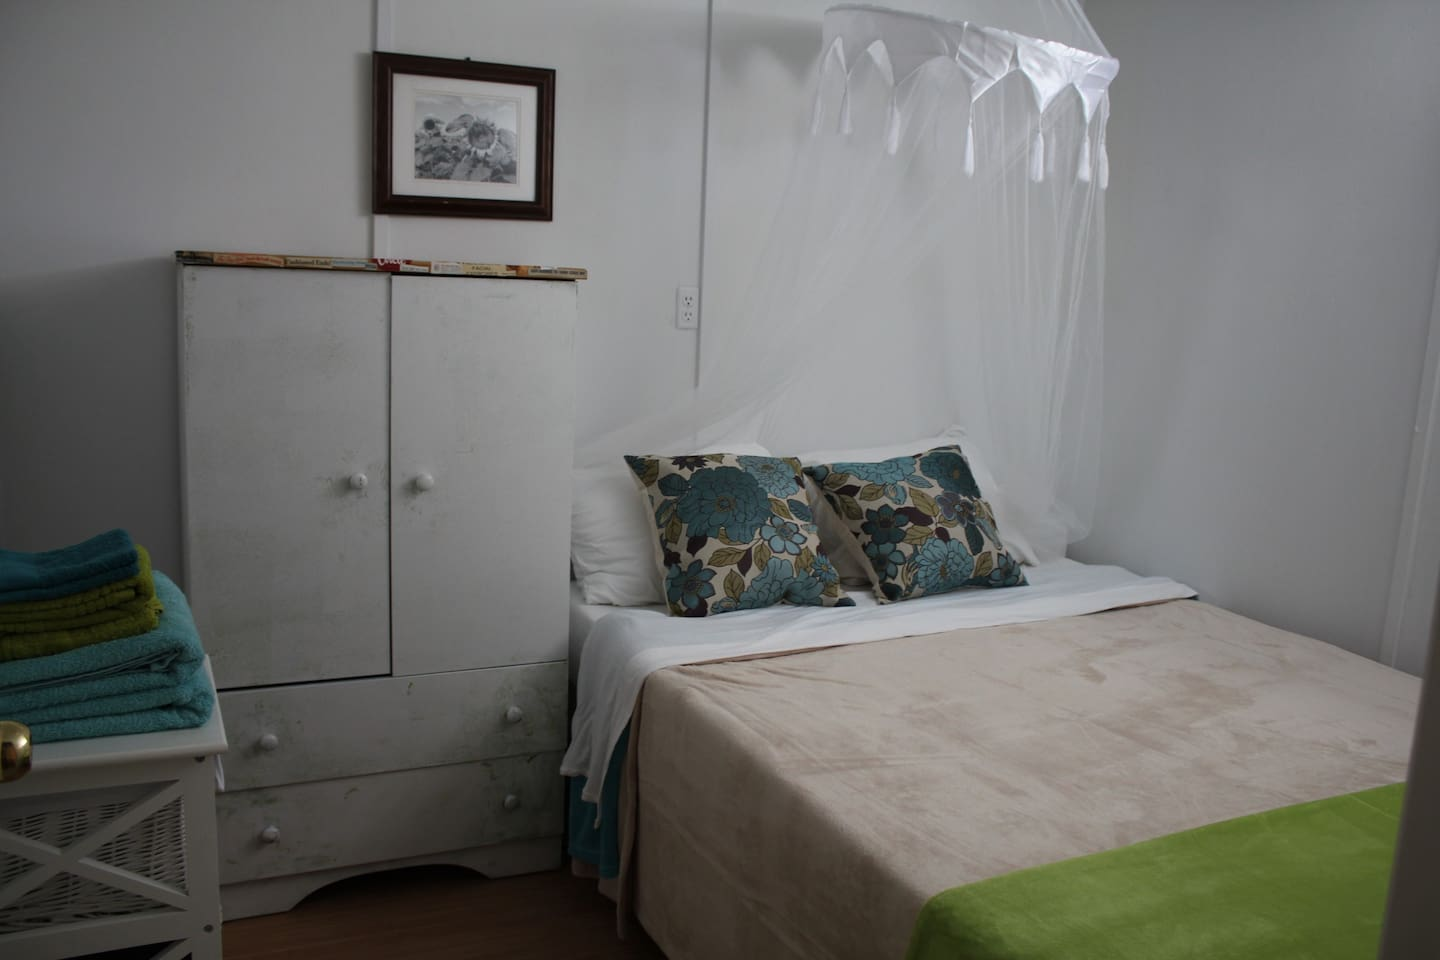 Bedroom #2 - we will put you in the nicest room we have available.  Clean cozy real bed new clean sheets